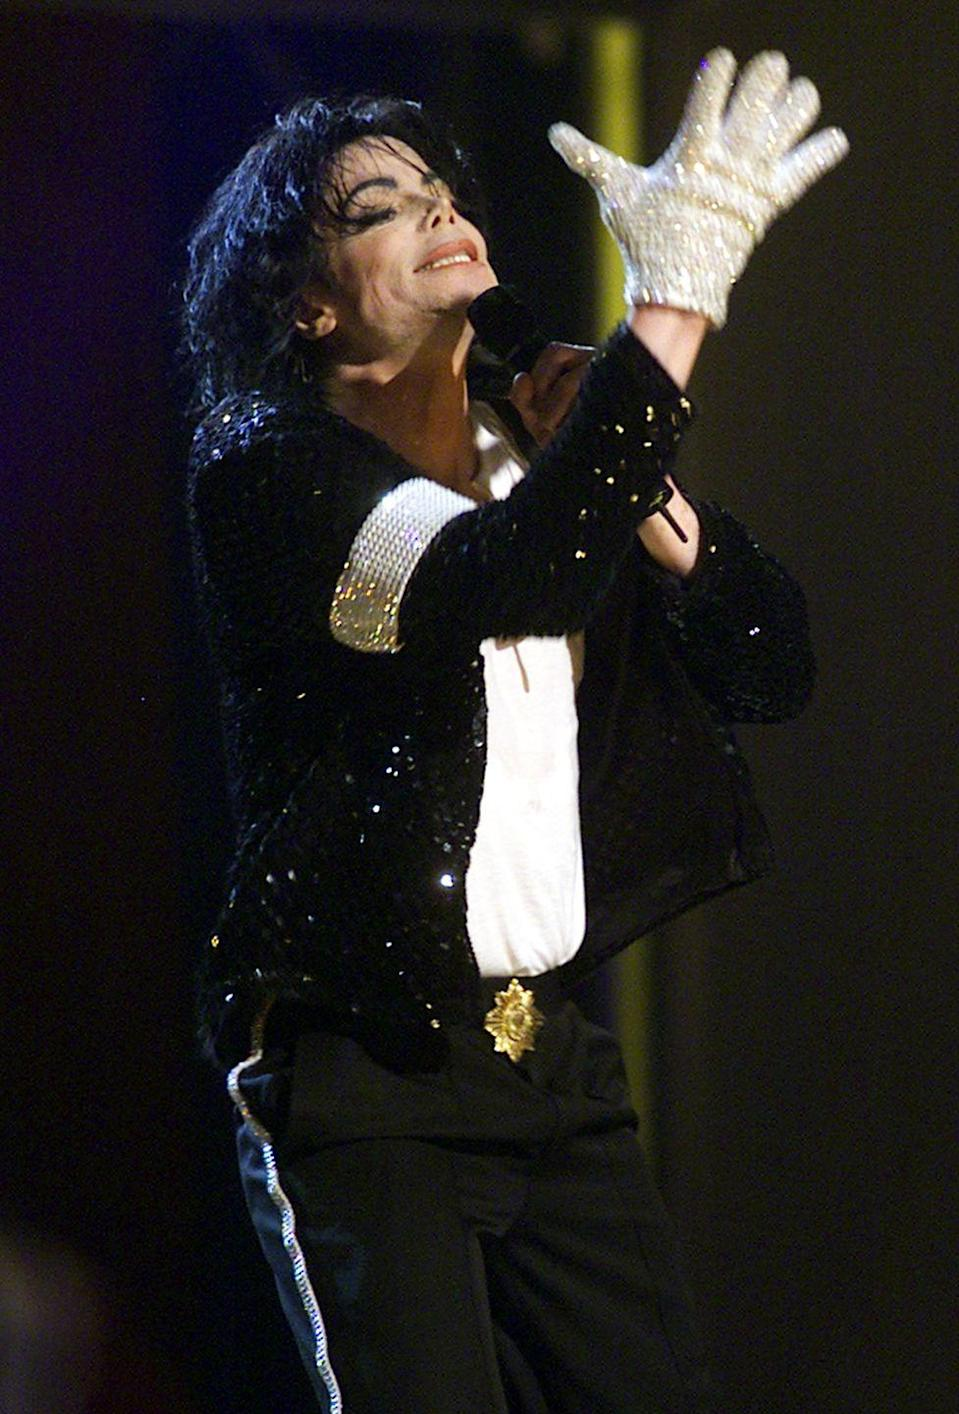 "<p>The King of Pop <a href=""https://www.independent.co.uk/arts-entertainment/music/features/michael-jacksons-one-white-glove-rhodri-marsdens-interesting-objects-no105-a6934371.html"" rel=""nofollow noopener"" target=""_blank"" data-ylk=""slk:first debuted"" class=""link rapid-noclick-resp"">first debuted</a> a single white glove onstage in 1983, and it became a symbol that we will forever remember him by. </p>"